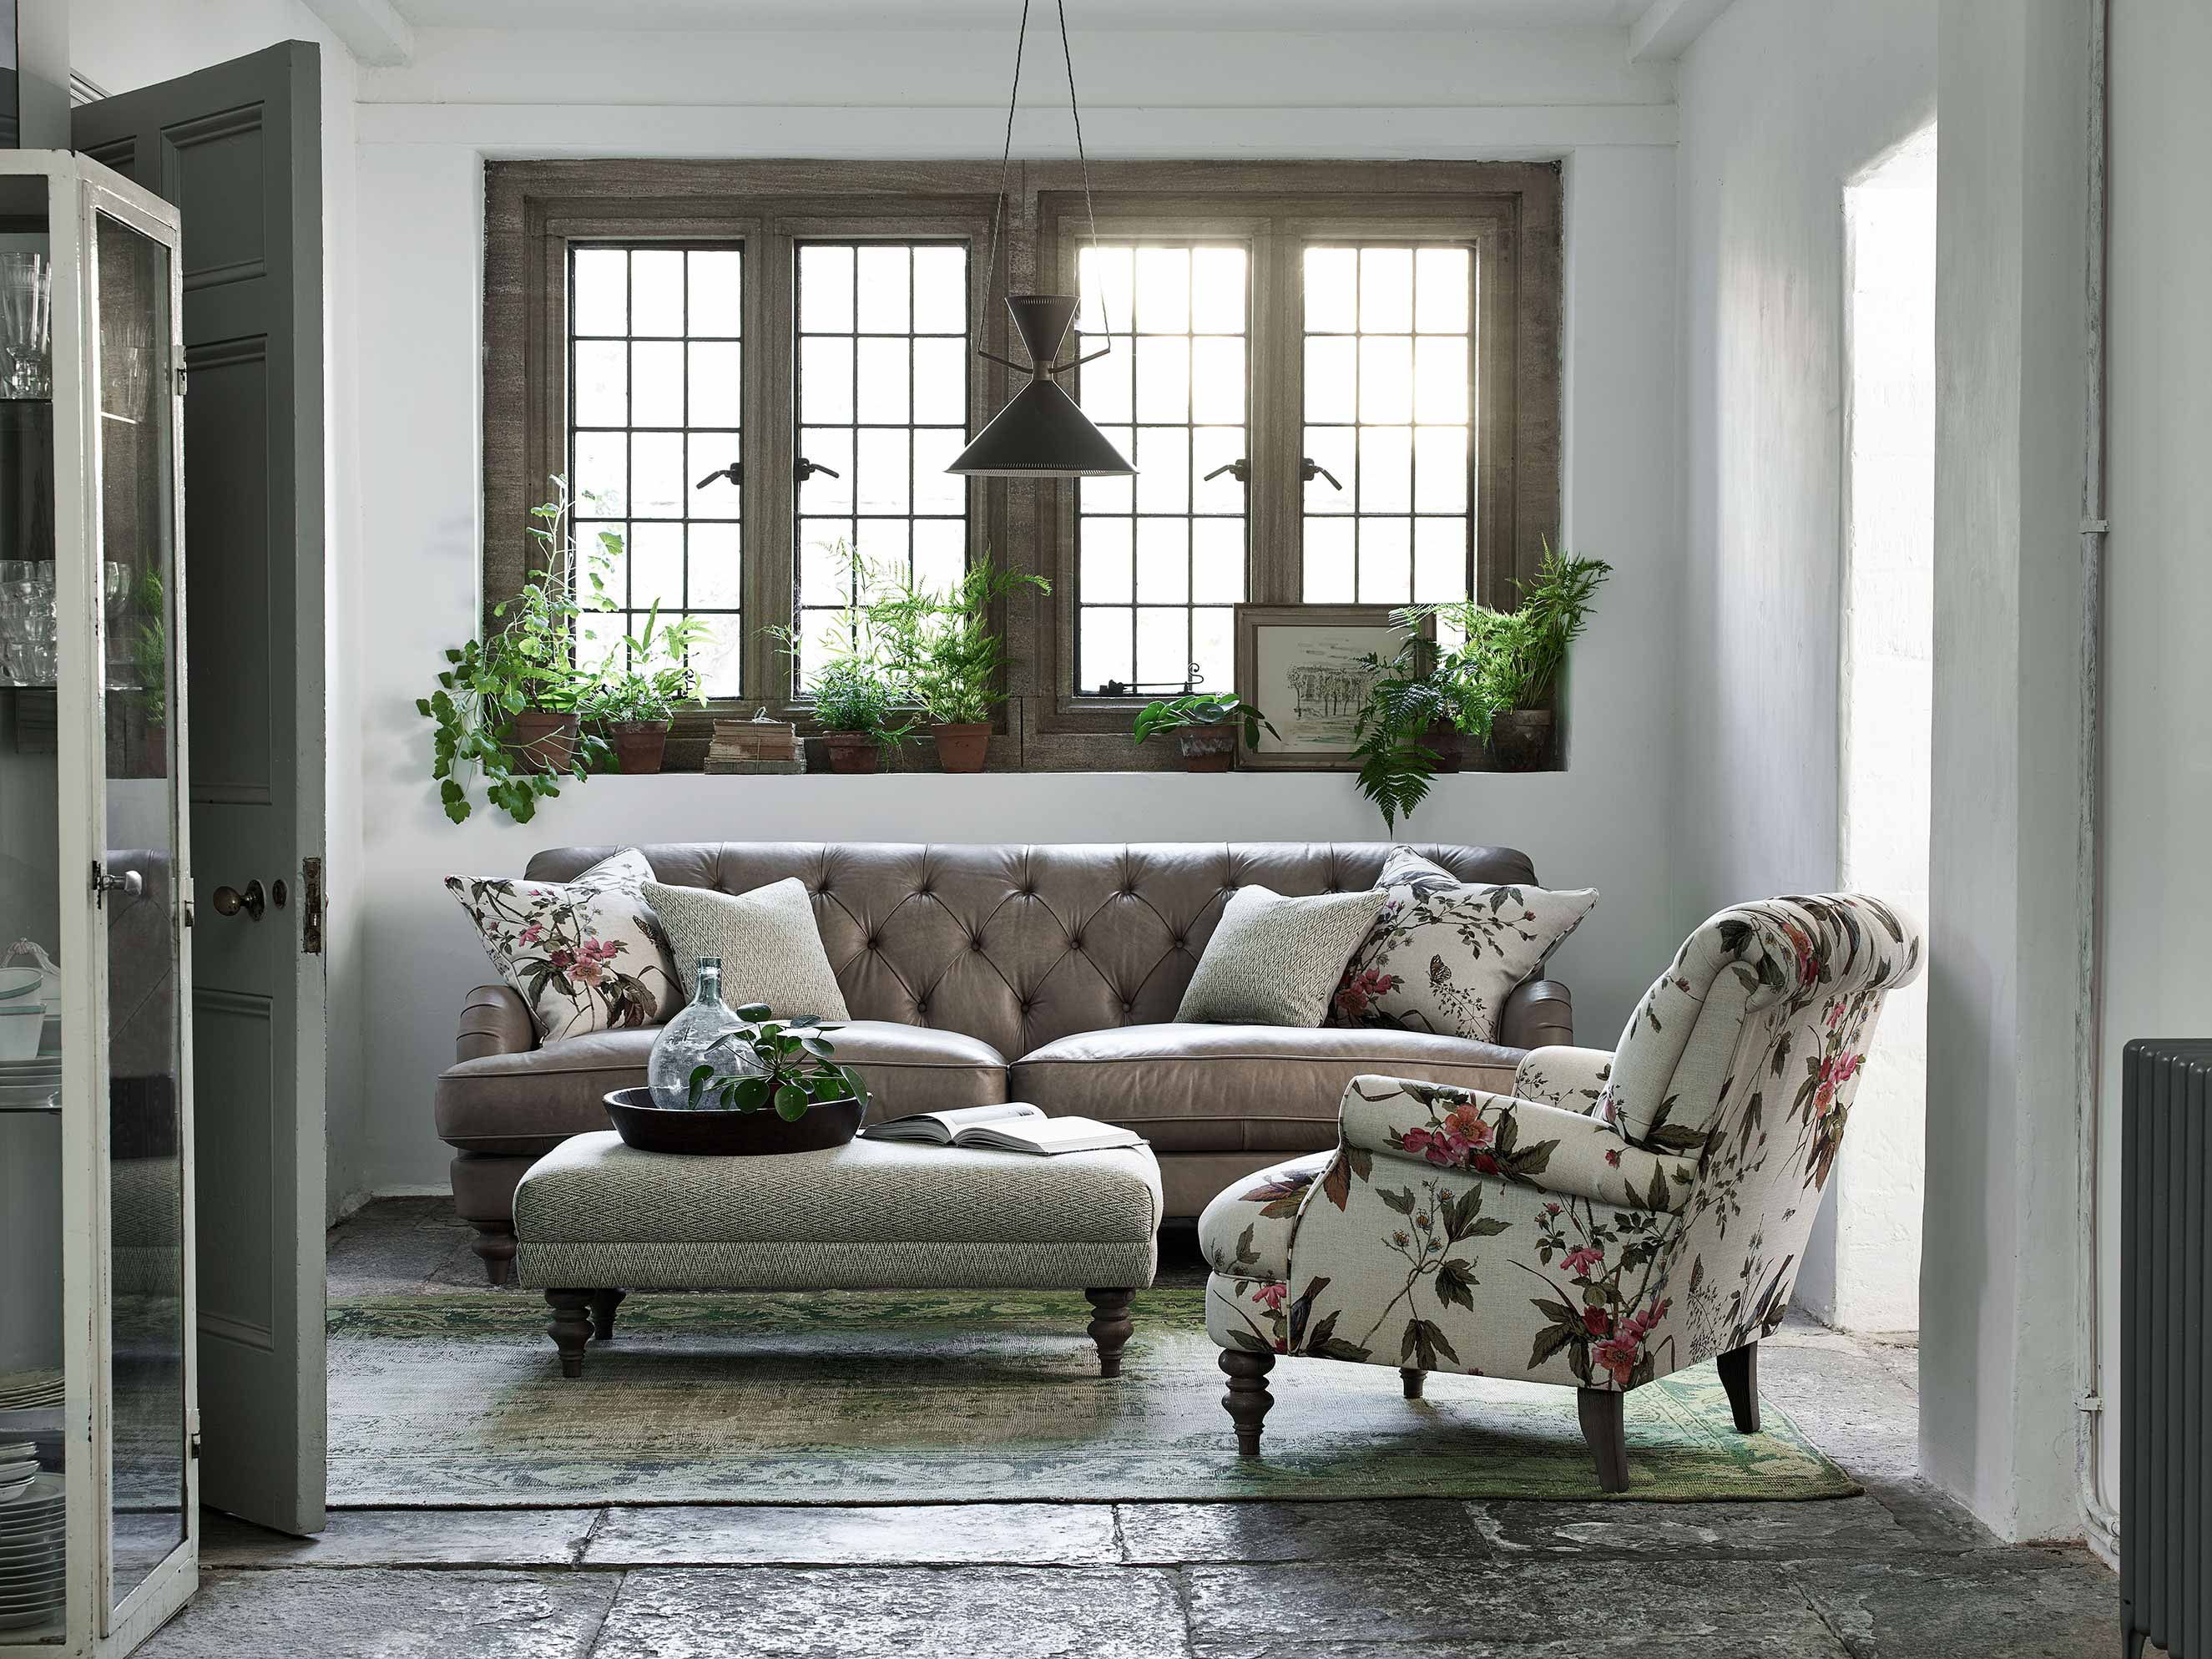 Big Sofa Island Greige Interior Design Trends 2018 Top Tips From The Experts The Luxpad